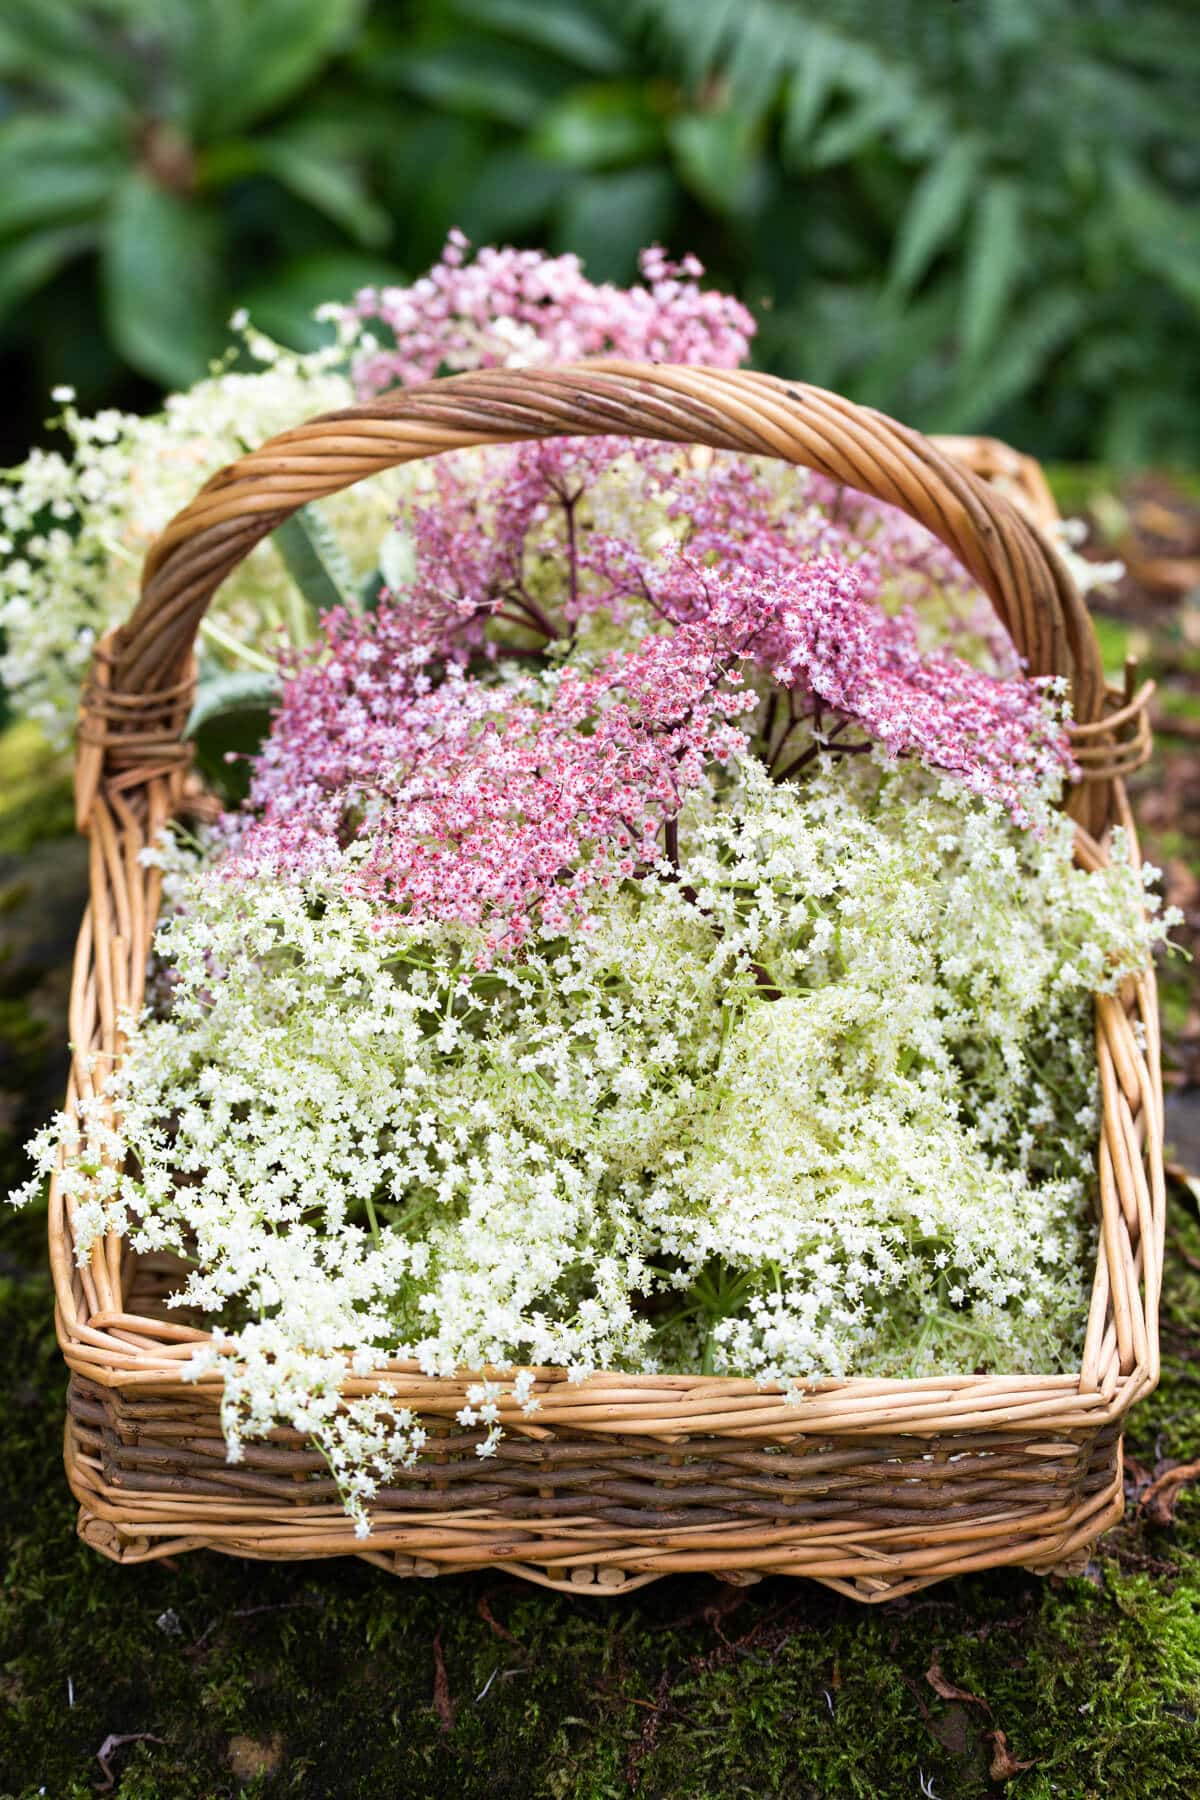 side angle view of a basket filled with elderflowers